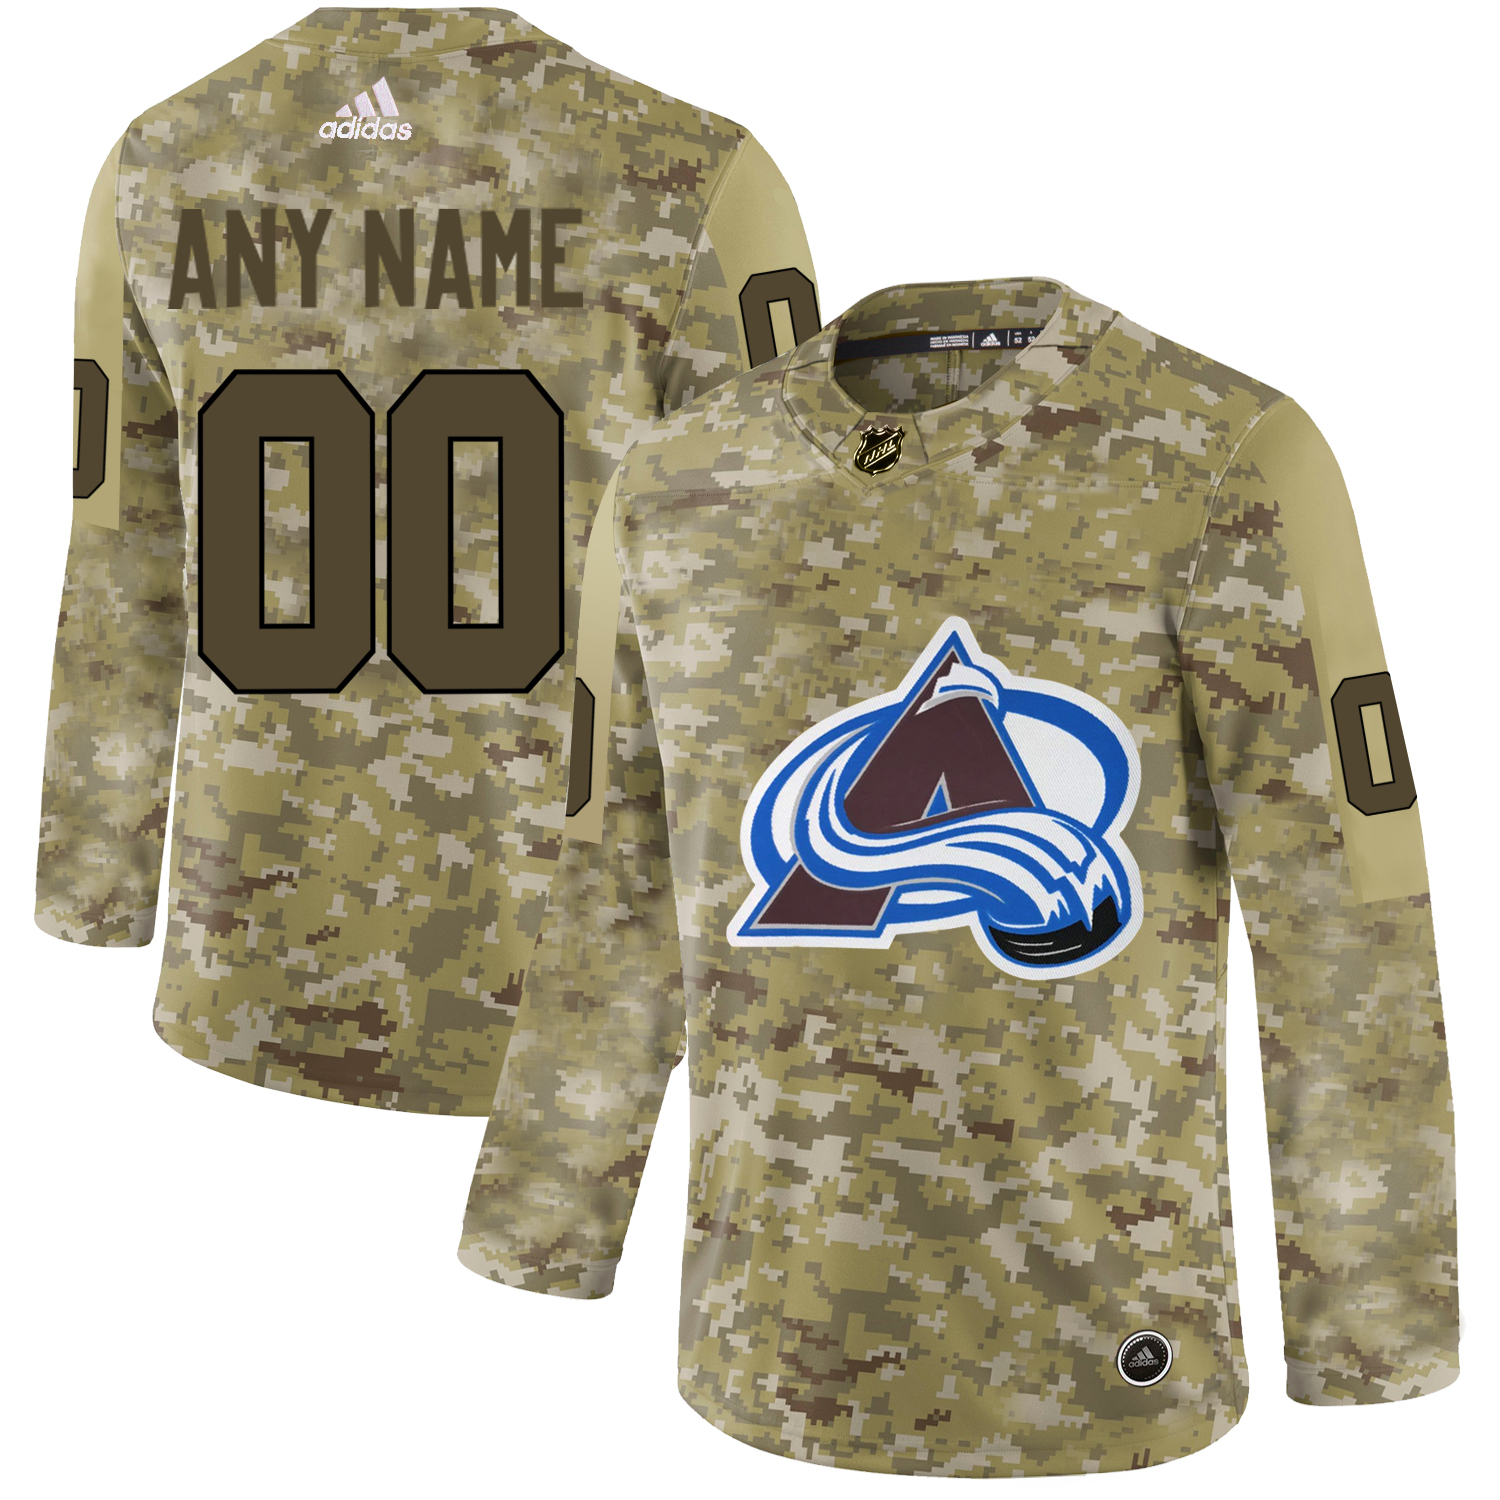 Colorado Avalanche Camo Men's Customized Adidas Jersey